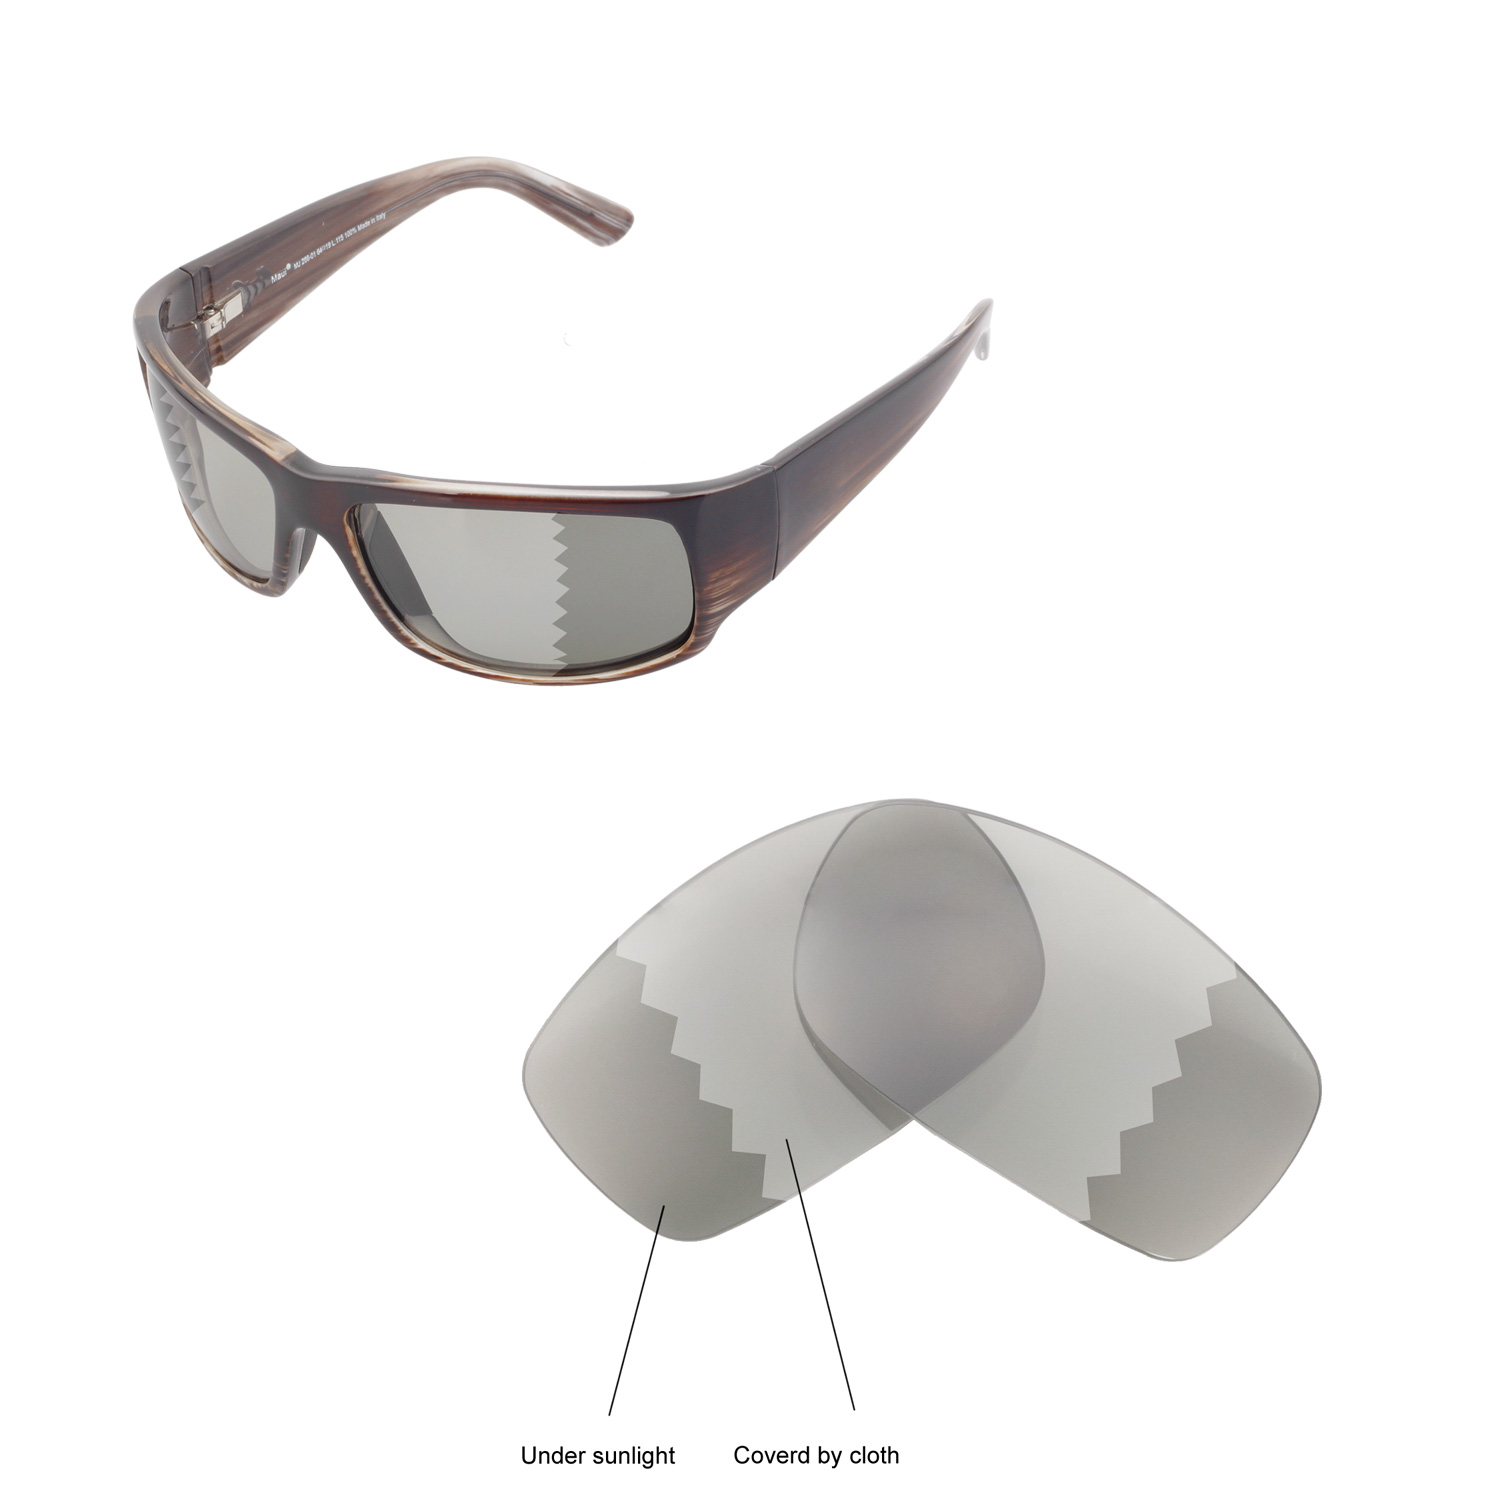 36092bf6d5 Details about Walleva Polarized Transition Photochromic Lenses For For Maui  Jim World Cup